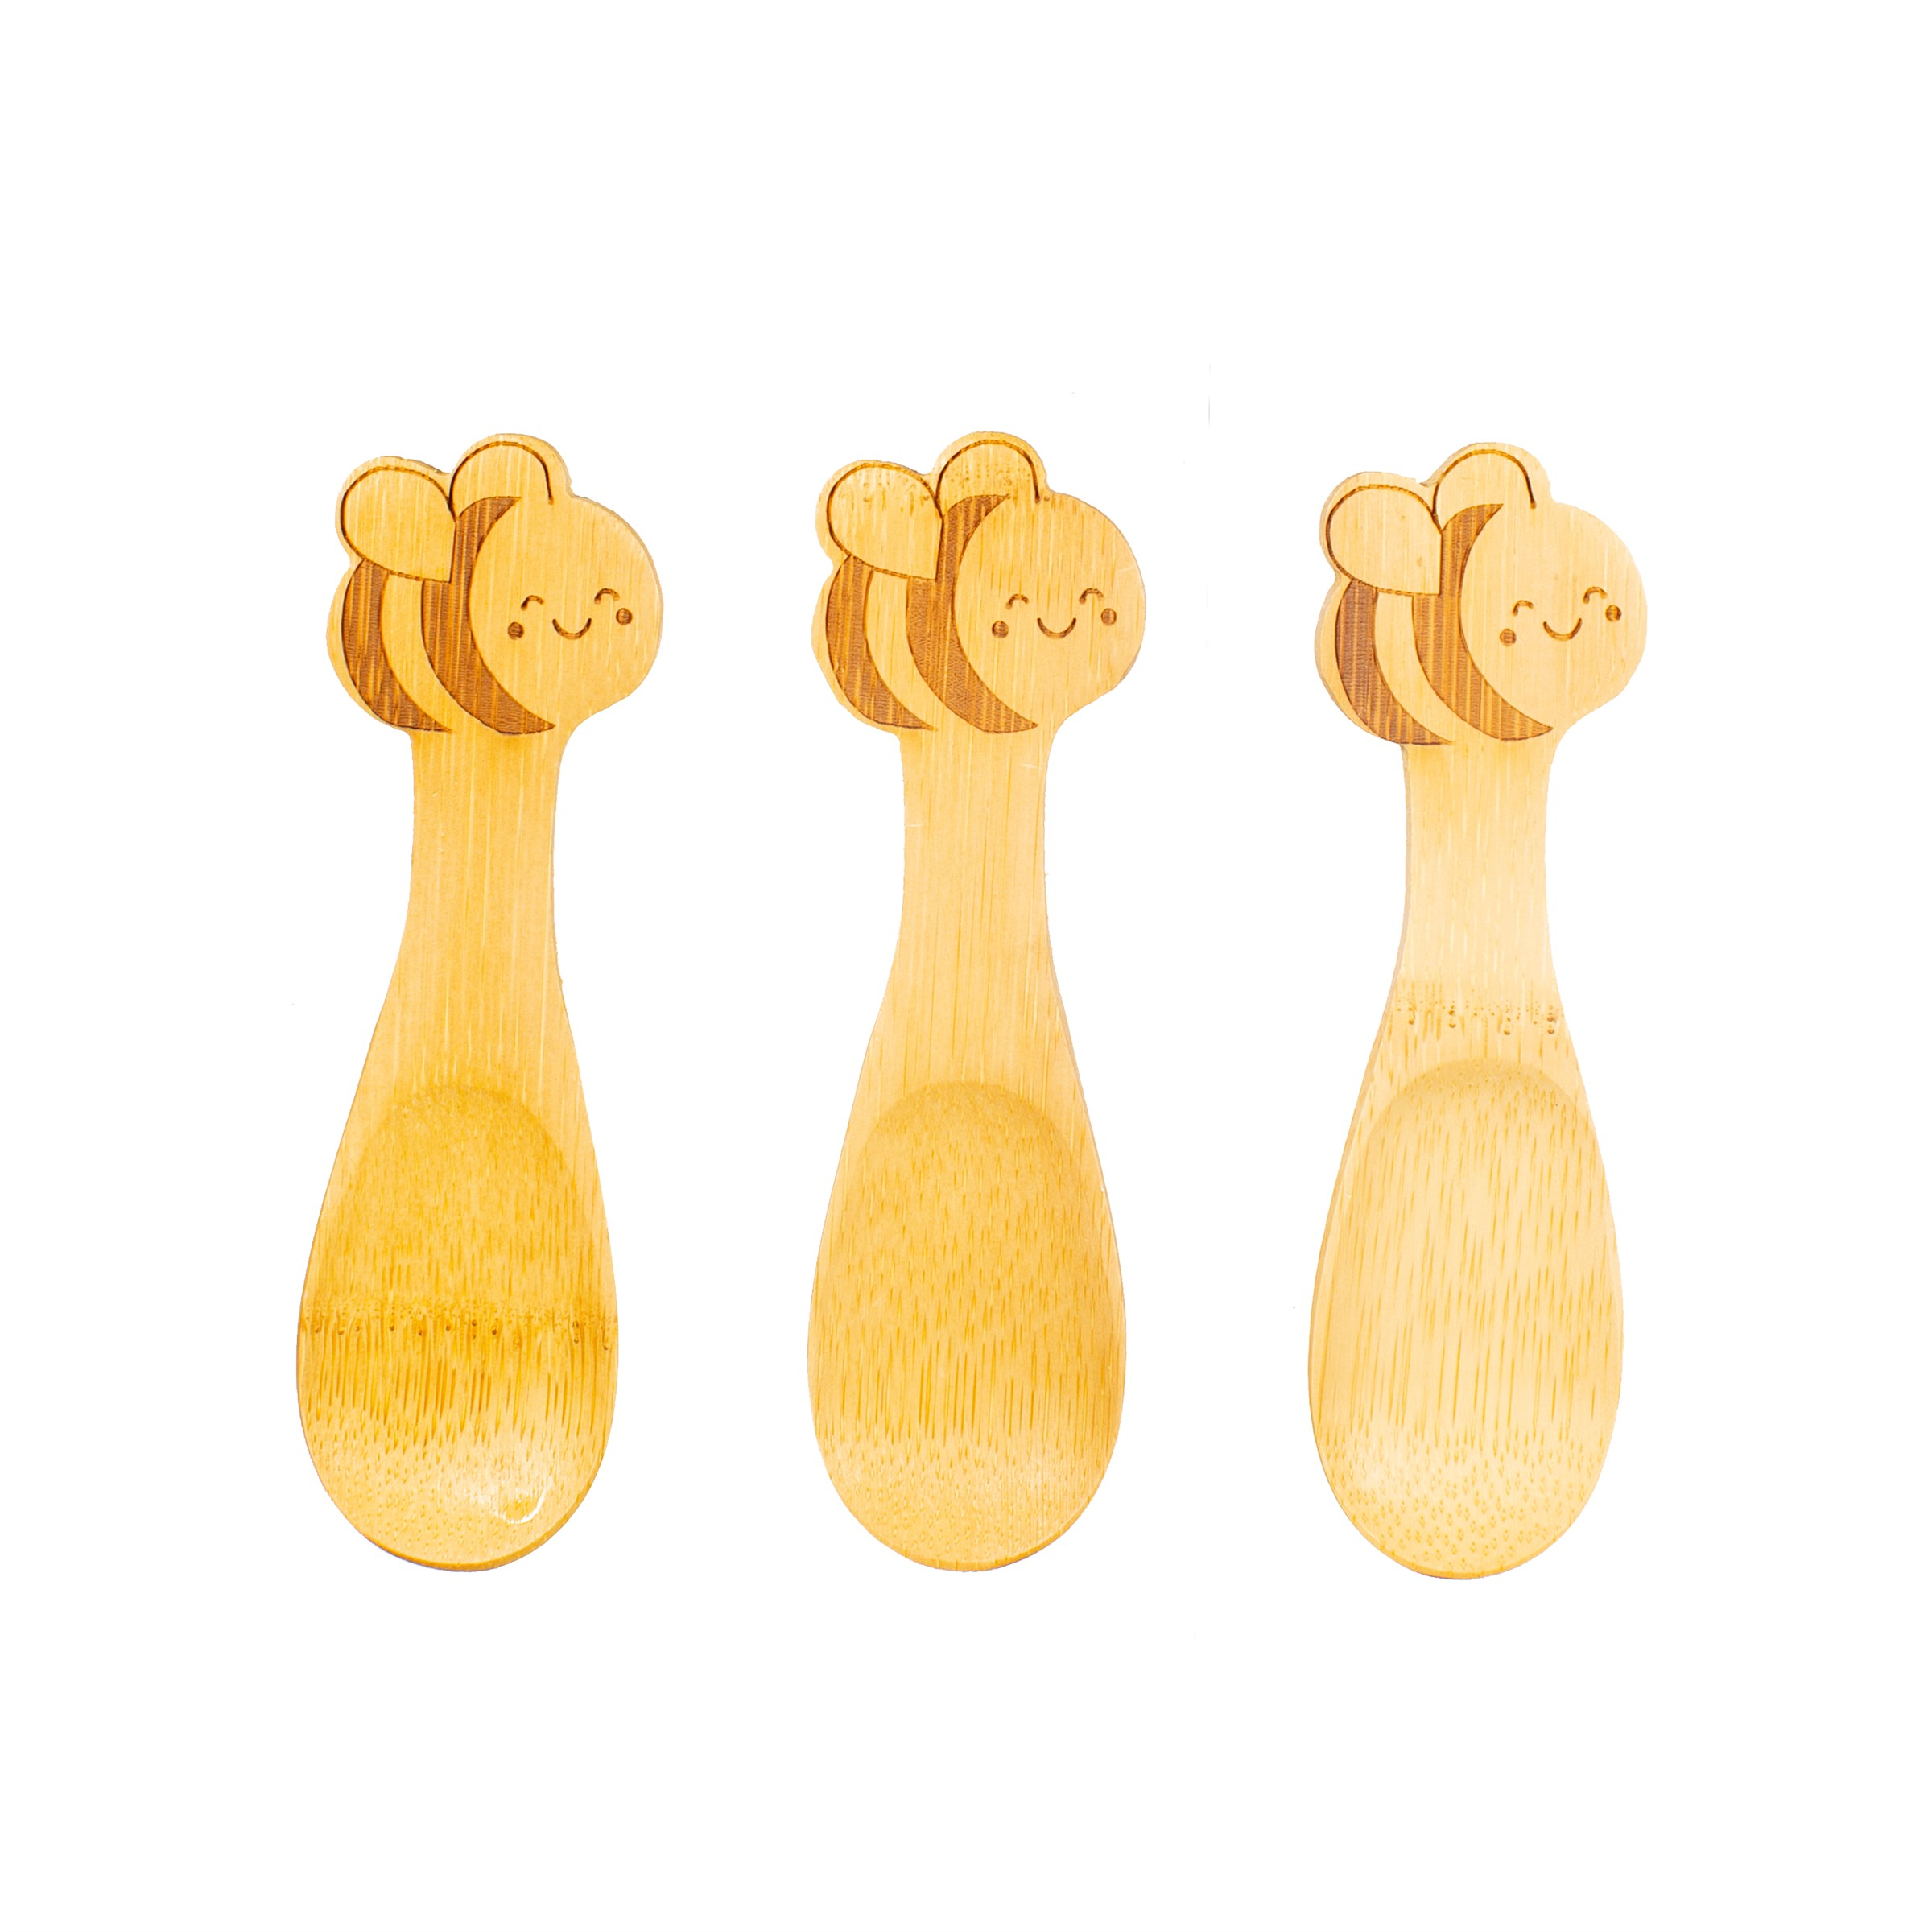 Bamboo bee spoons- set of 3. Sass & Belle